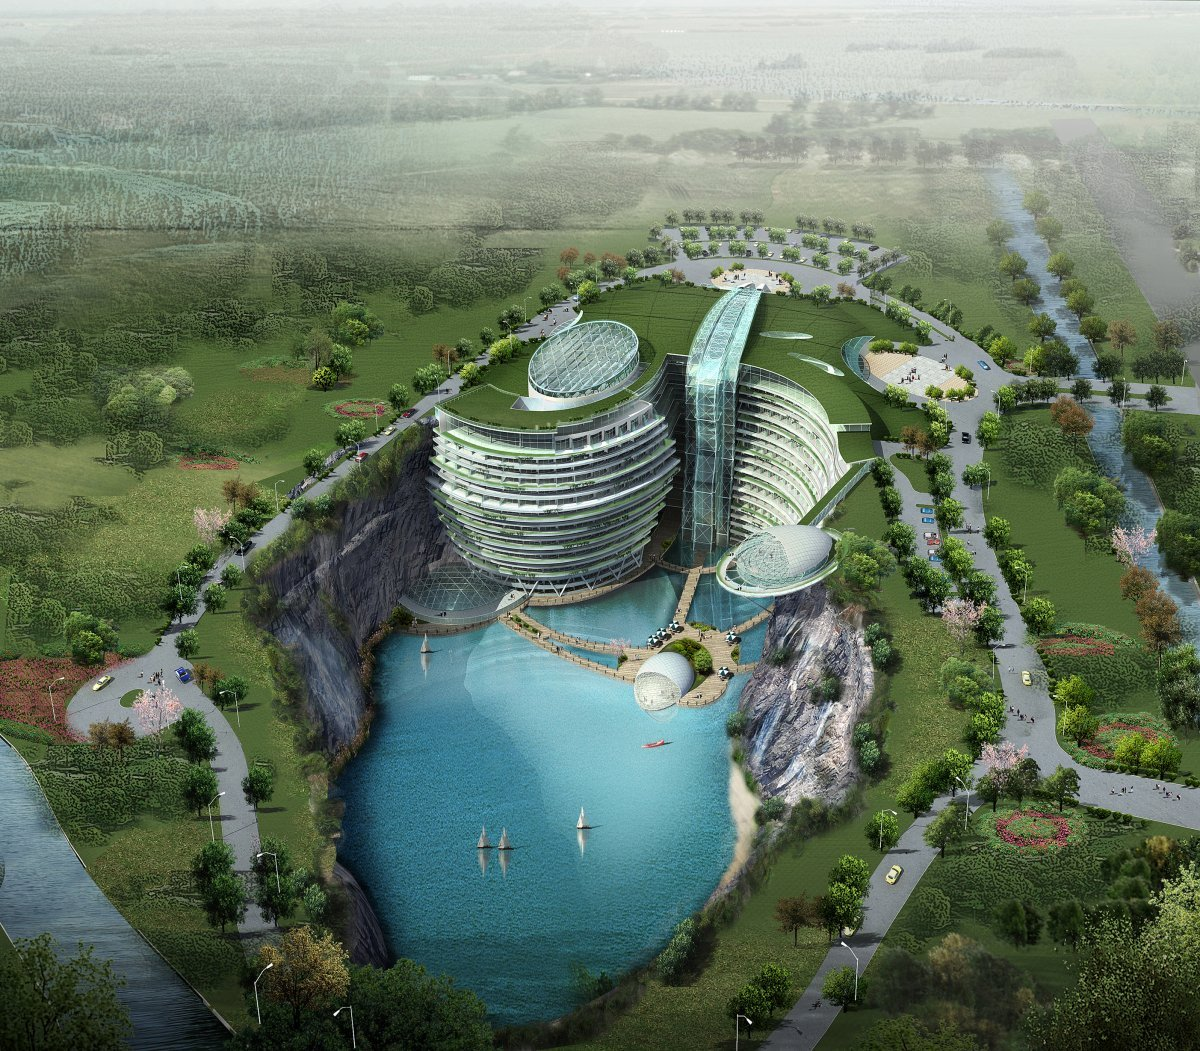 RE: Songjiang Shimao Hotel China - Is it real?